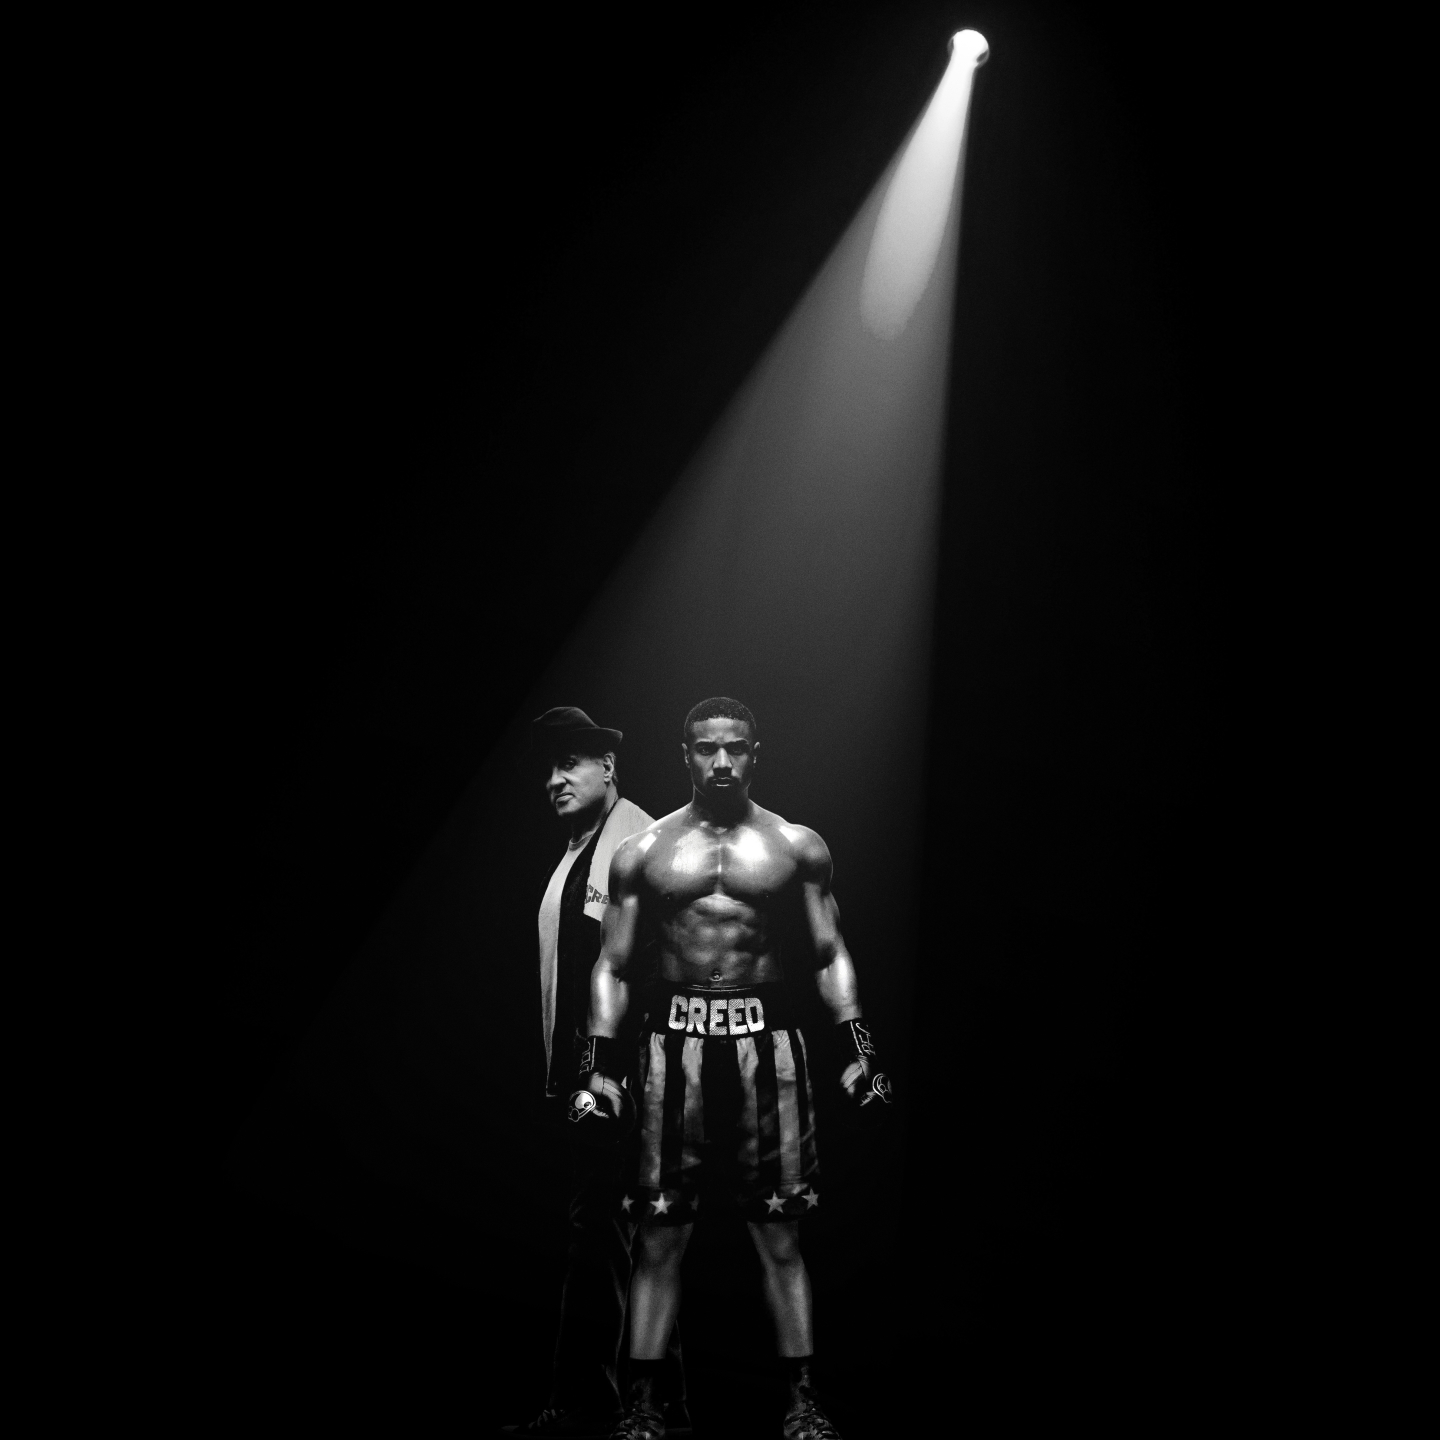 sylvester stallone and michael jordan in creed 2 poster a2hlZWWUmZqaraWkpJRmaWllrWZpaWU